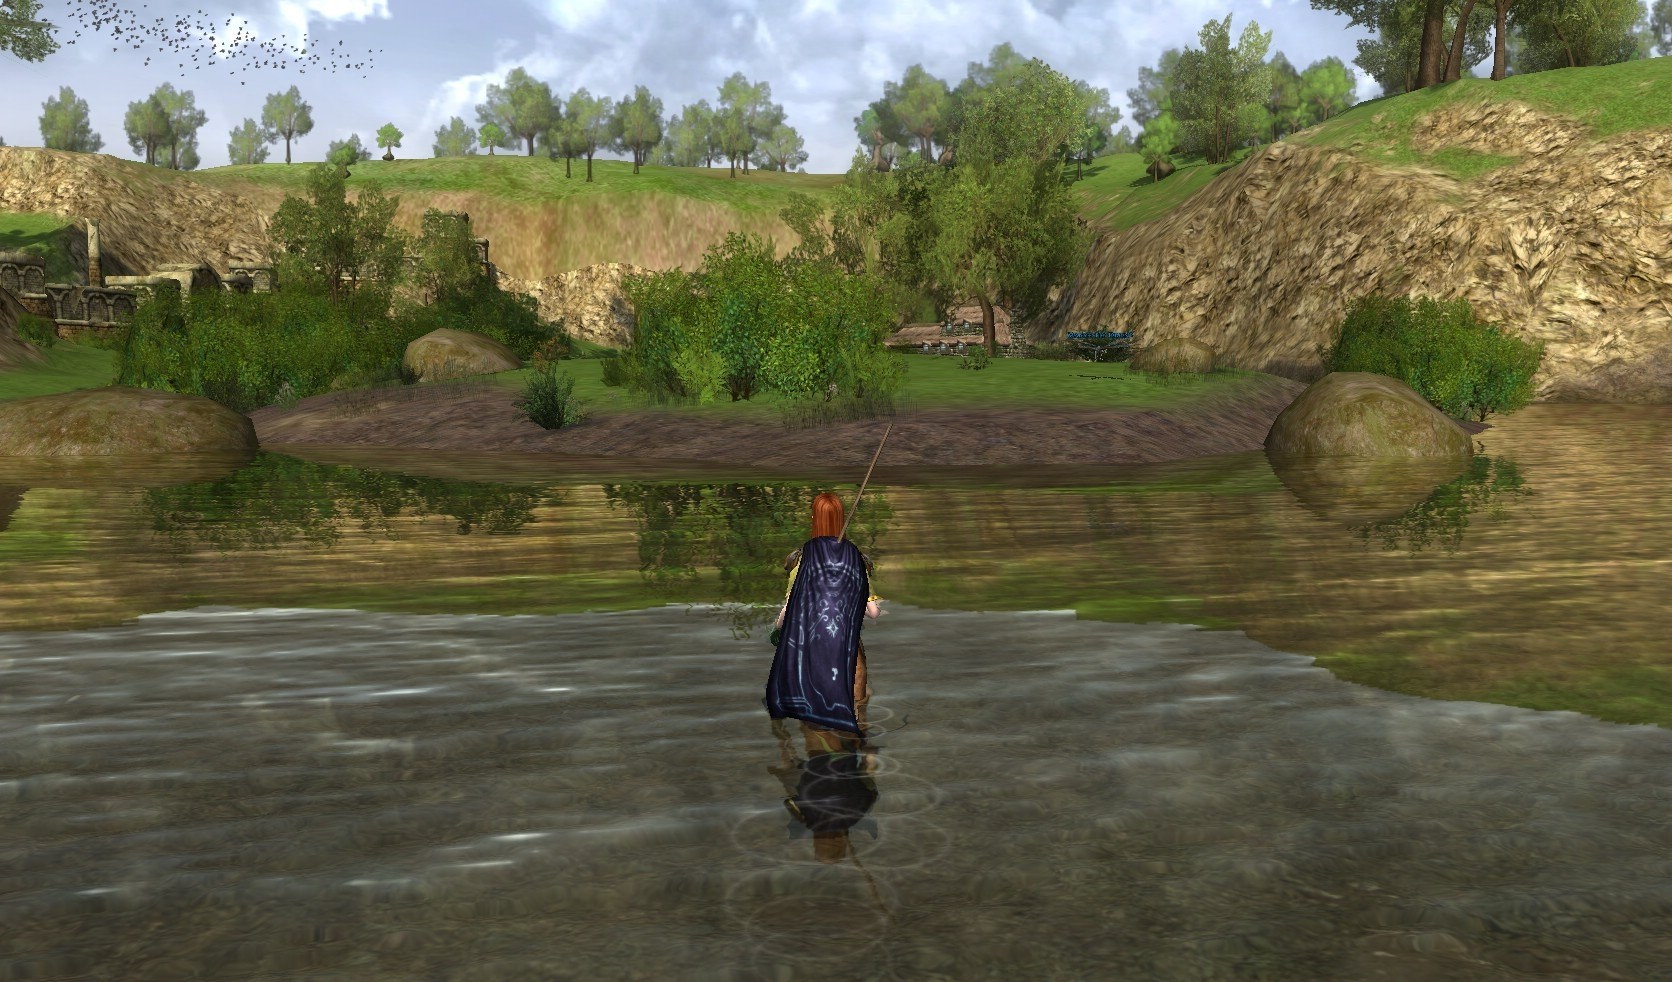 Lord of the Rings Online - Wading through Water